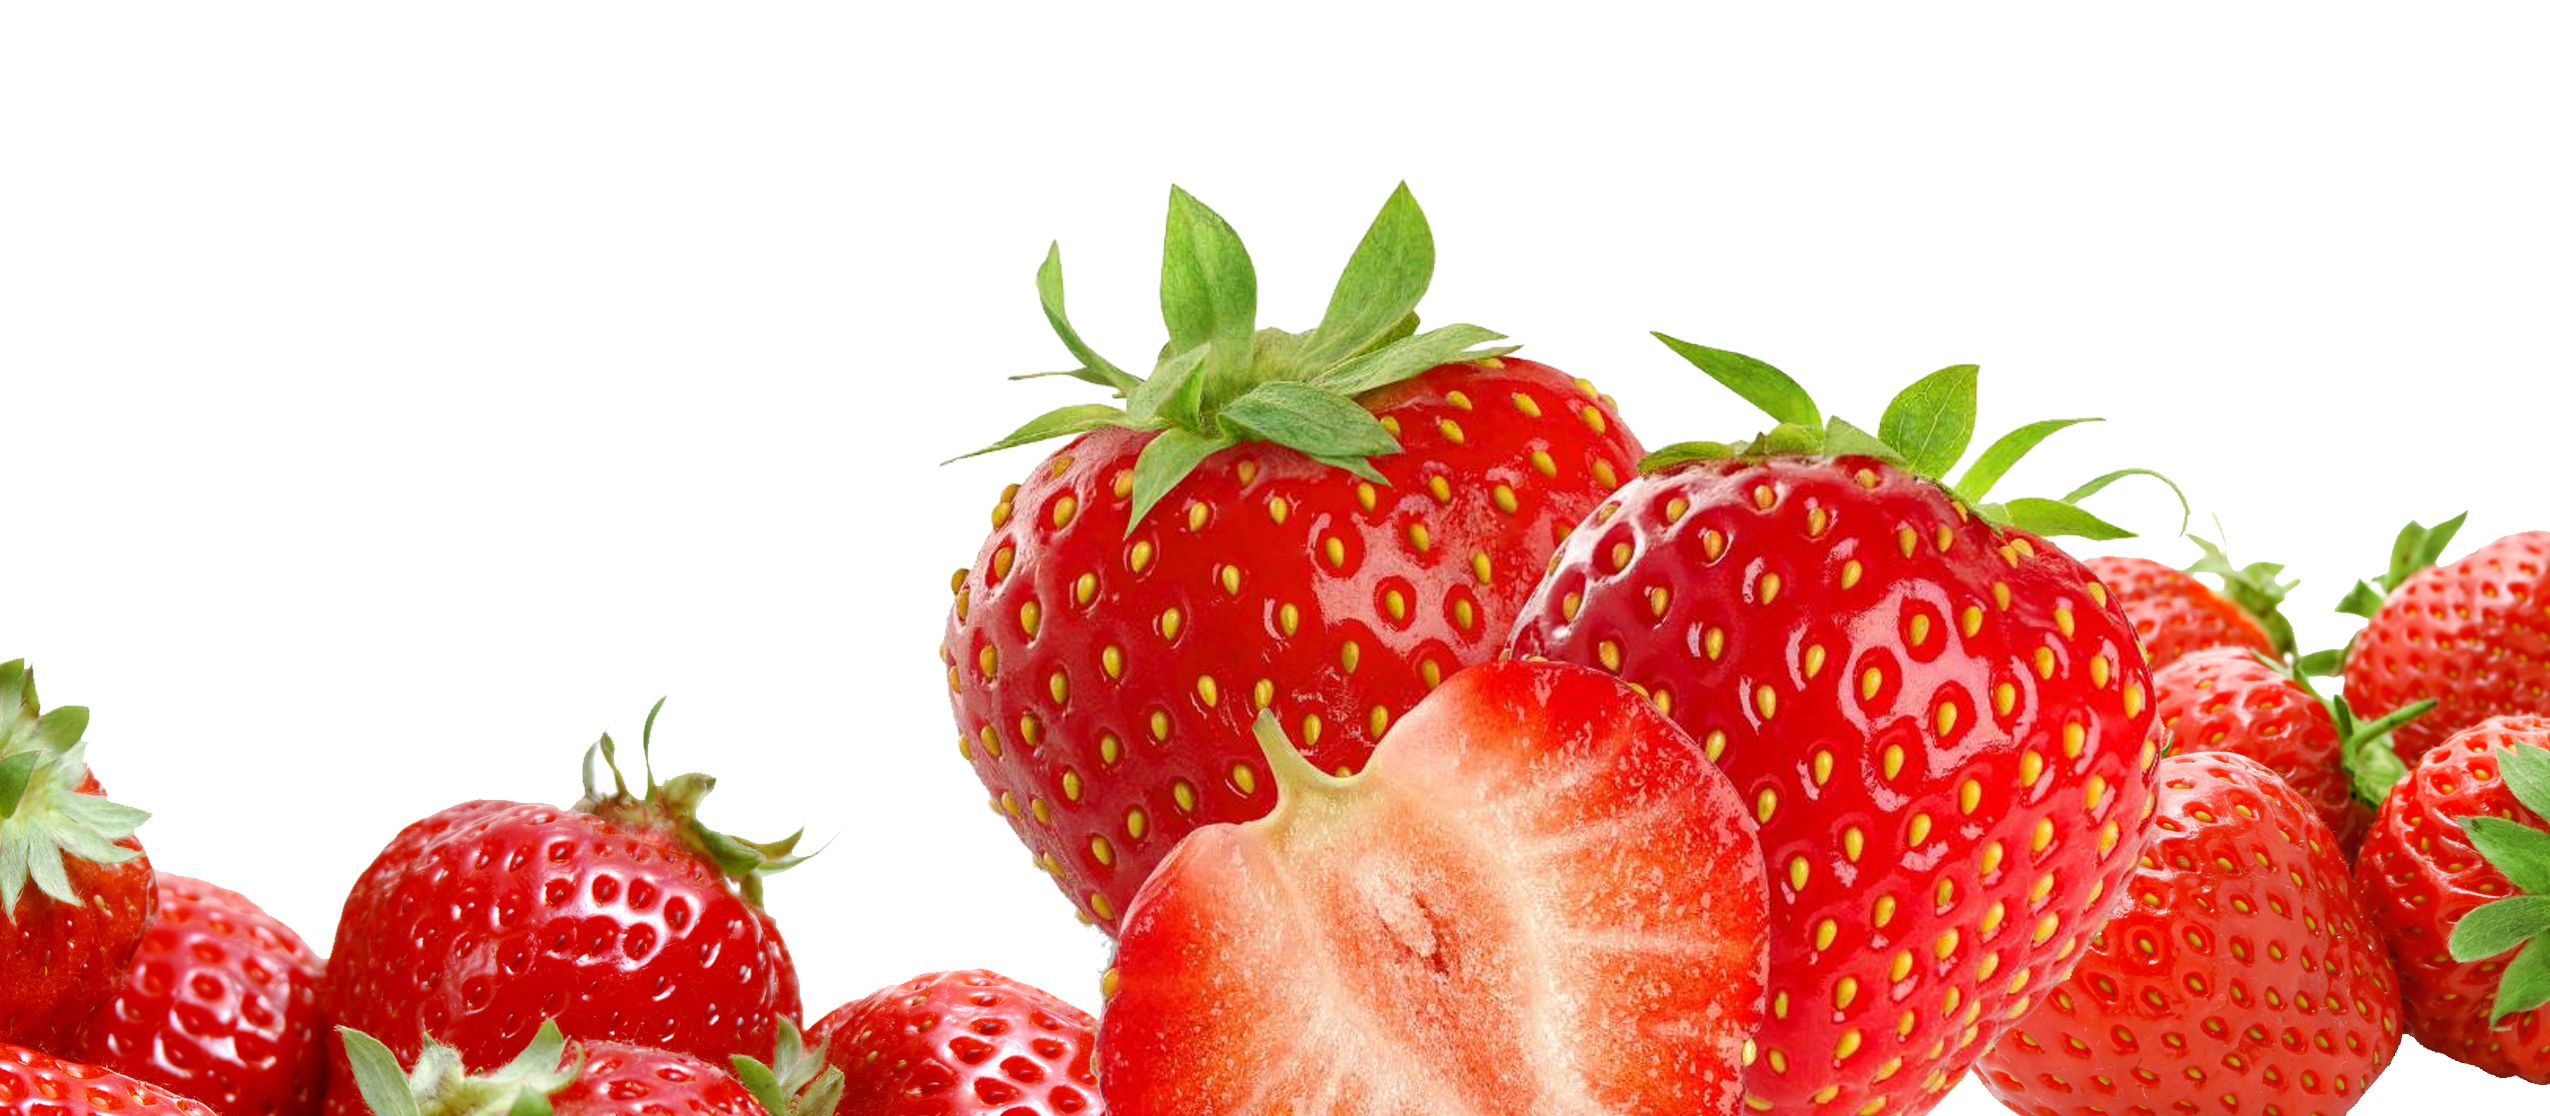 Strawberry Background image #22936